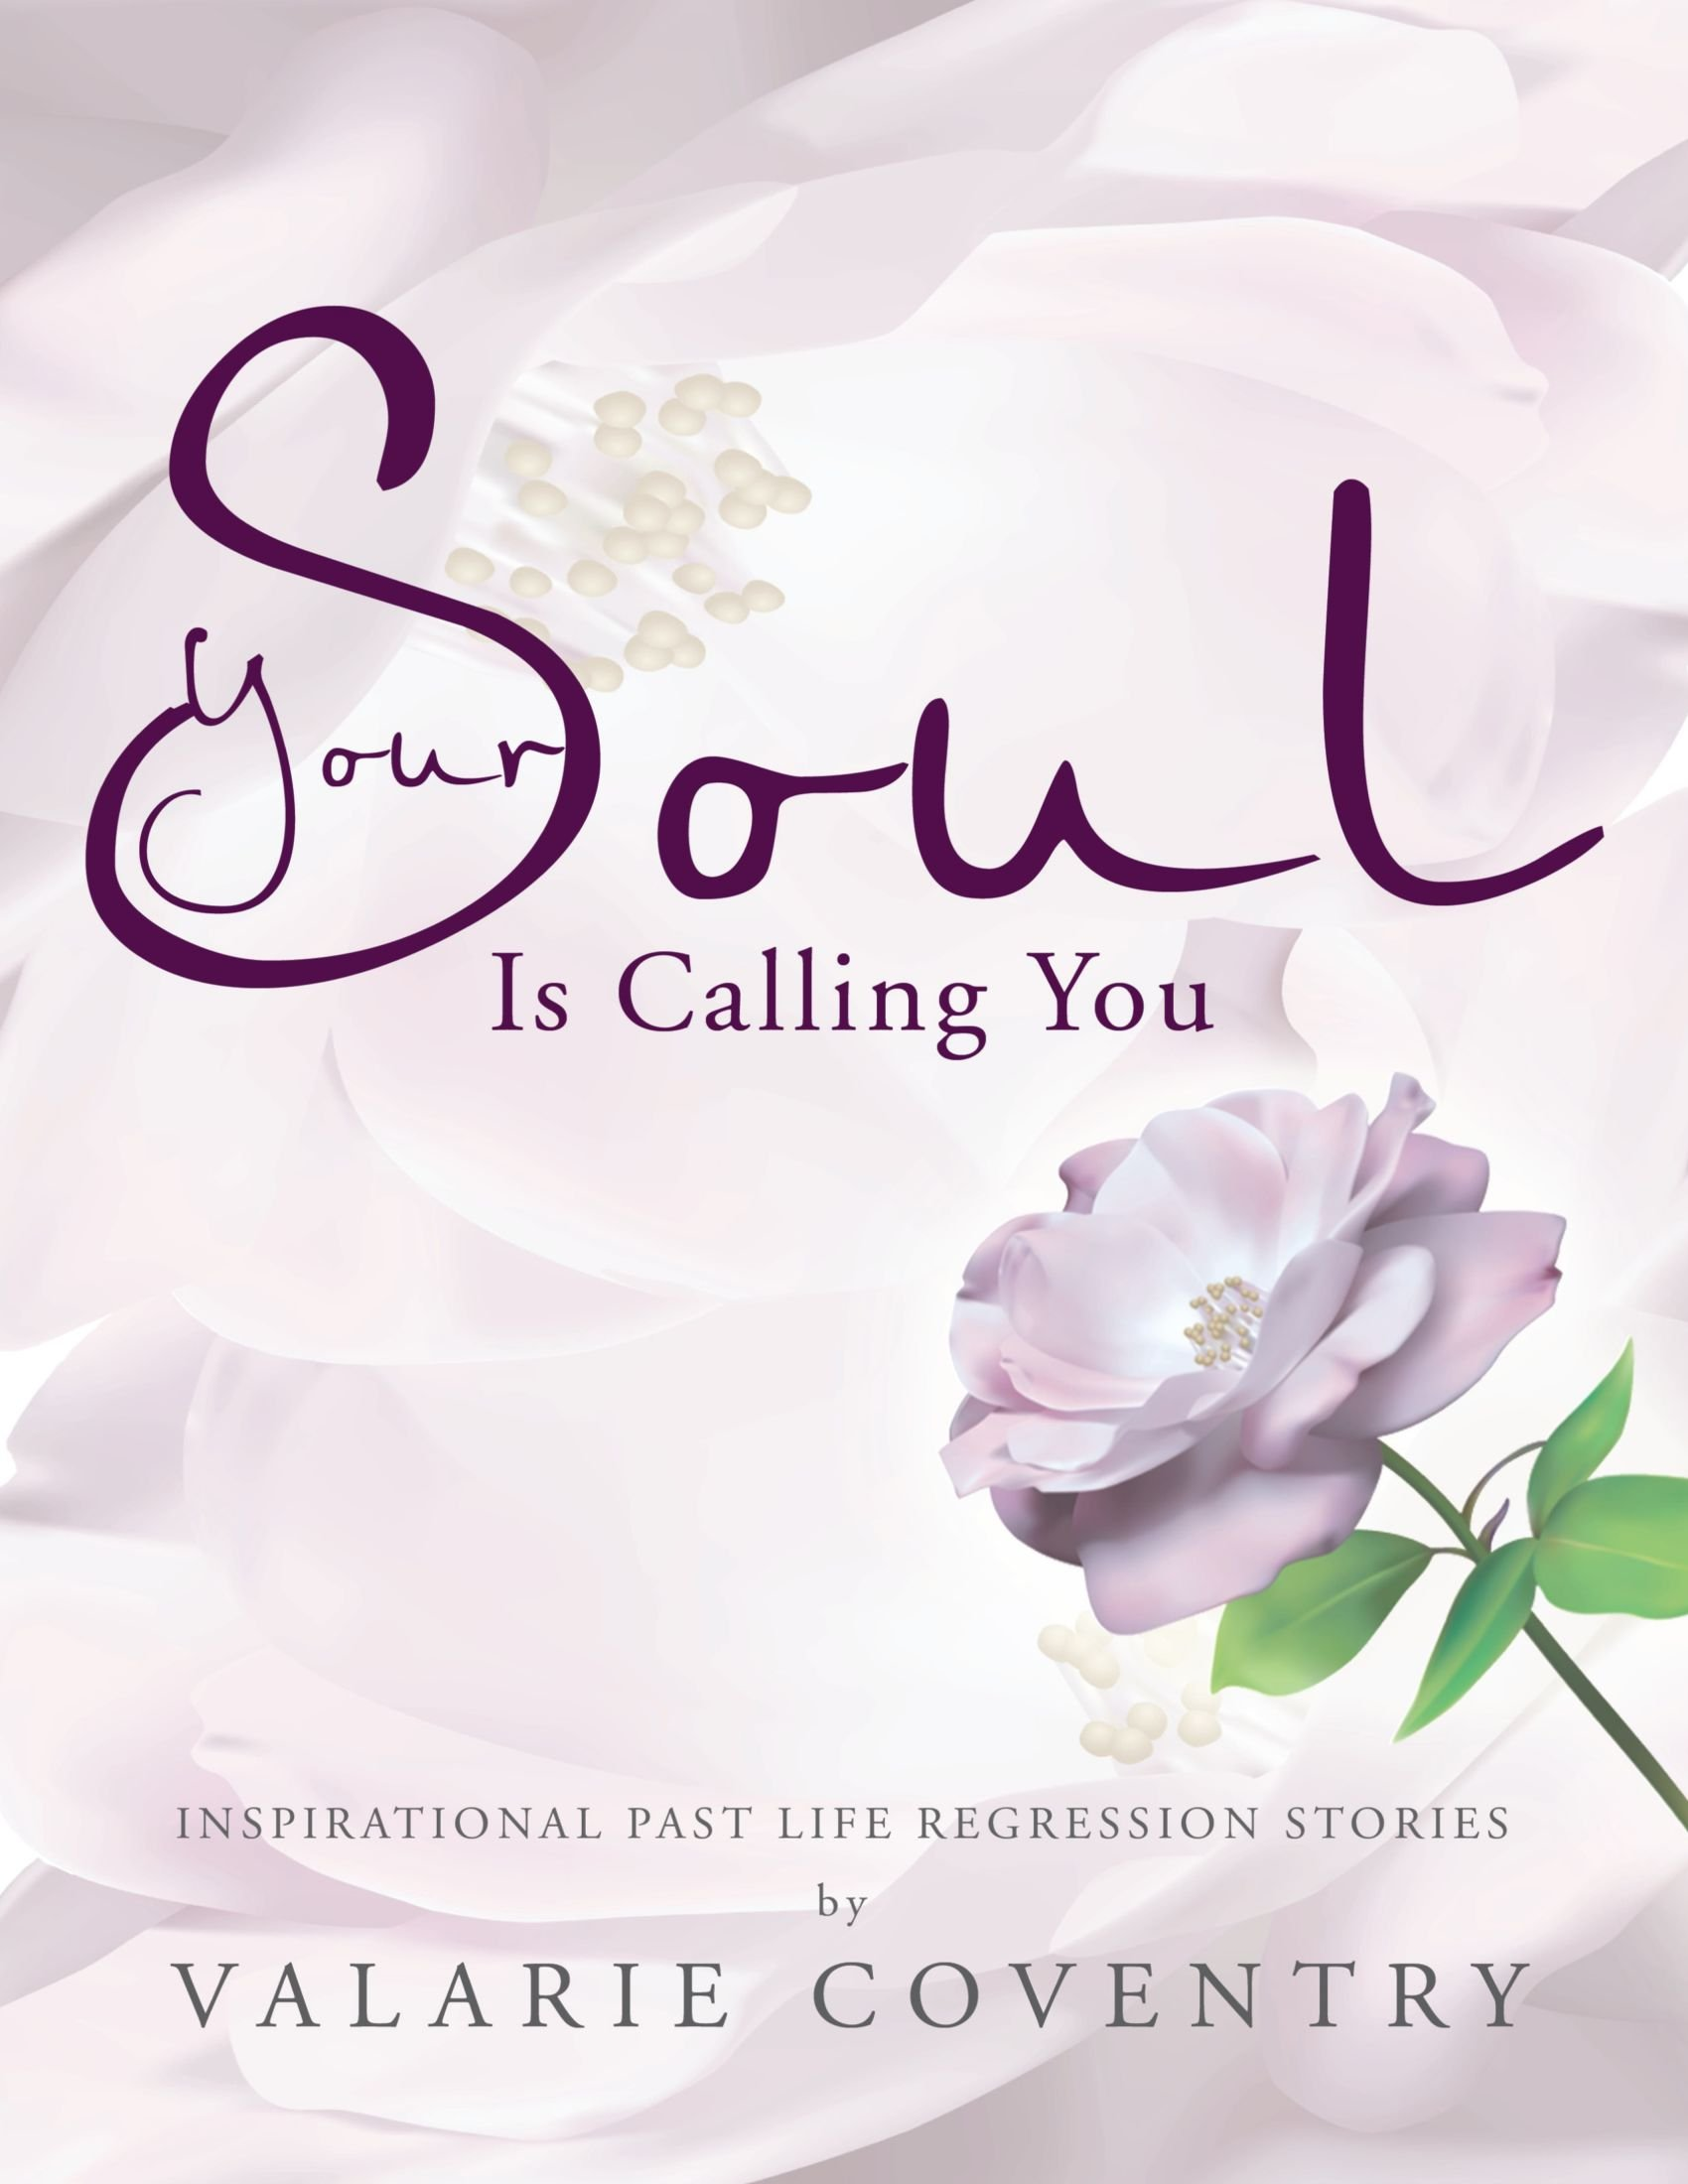 Your Soul is Calling You: Inspirational Past Life Regression Stories PDF